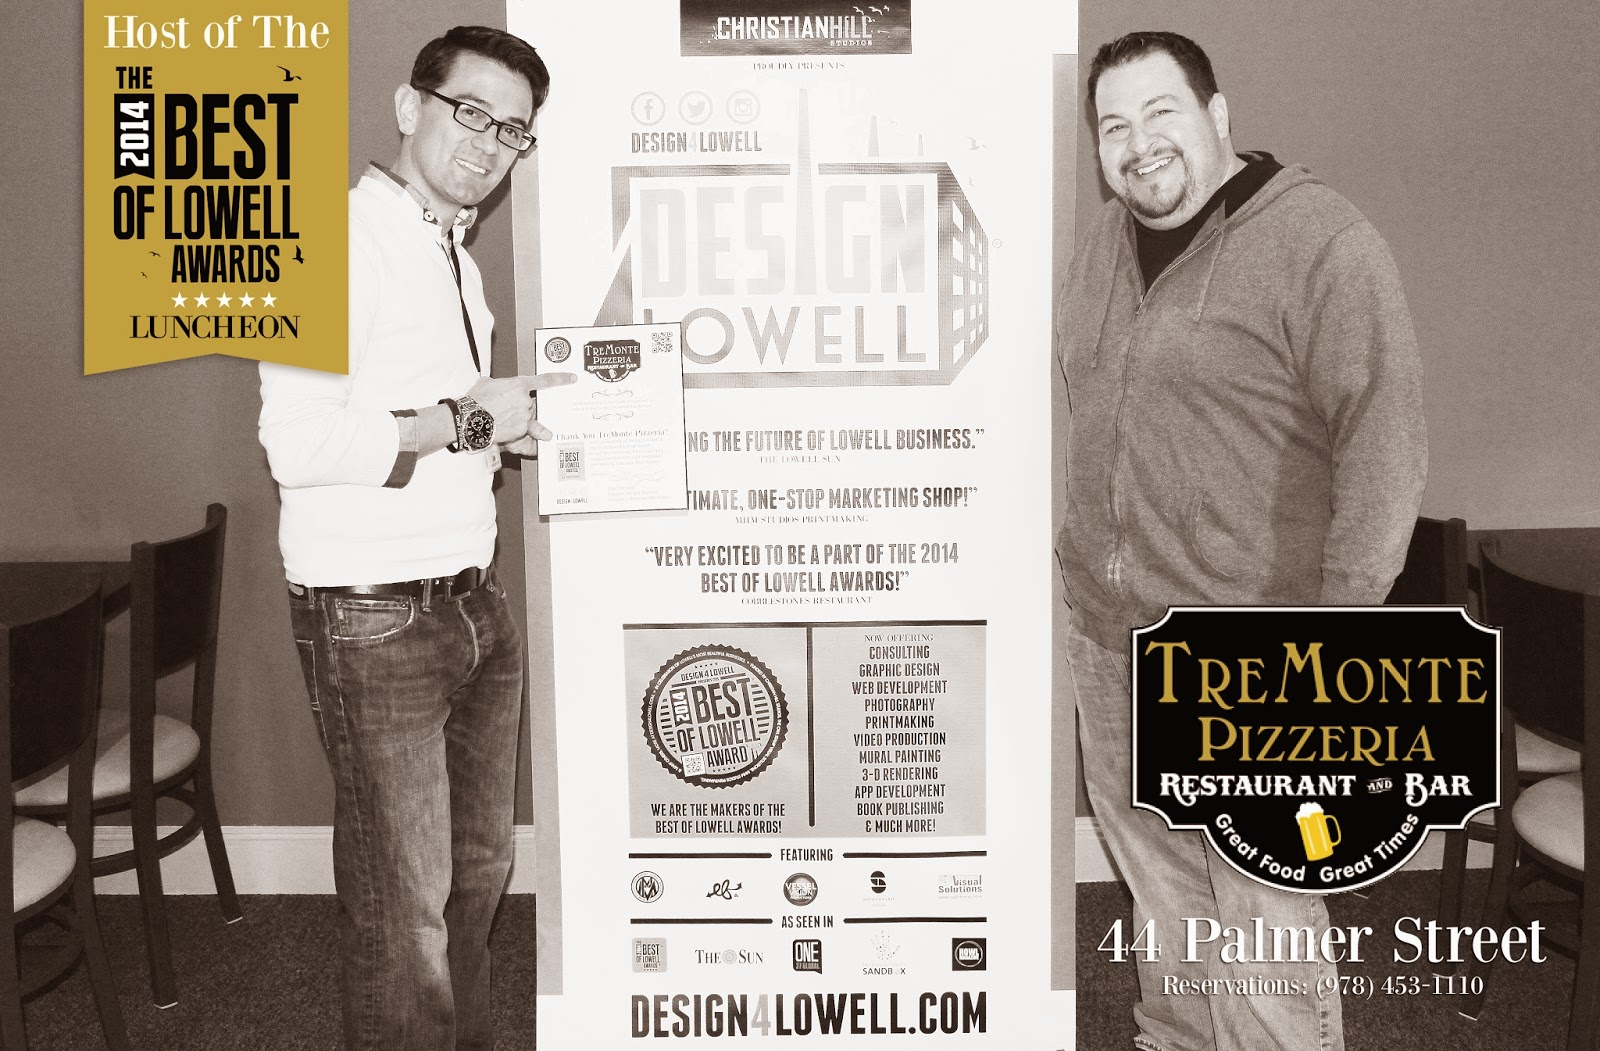 Design 4 Lowell Much thanks to The Owl Stamp Visual Solutions and to TreMonte Pizzeria at  44 Palmer Street for hosting the luncheon and providing us with free lunch